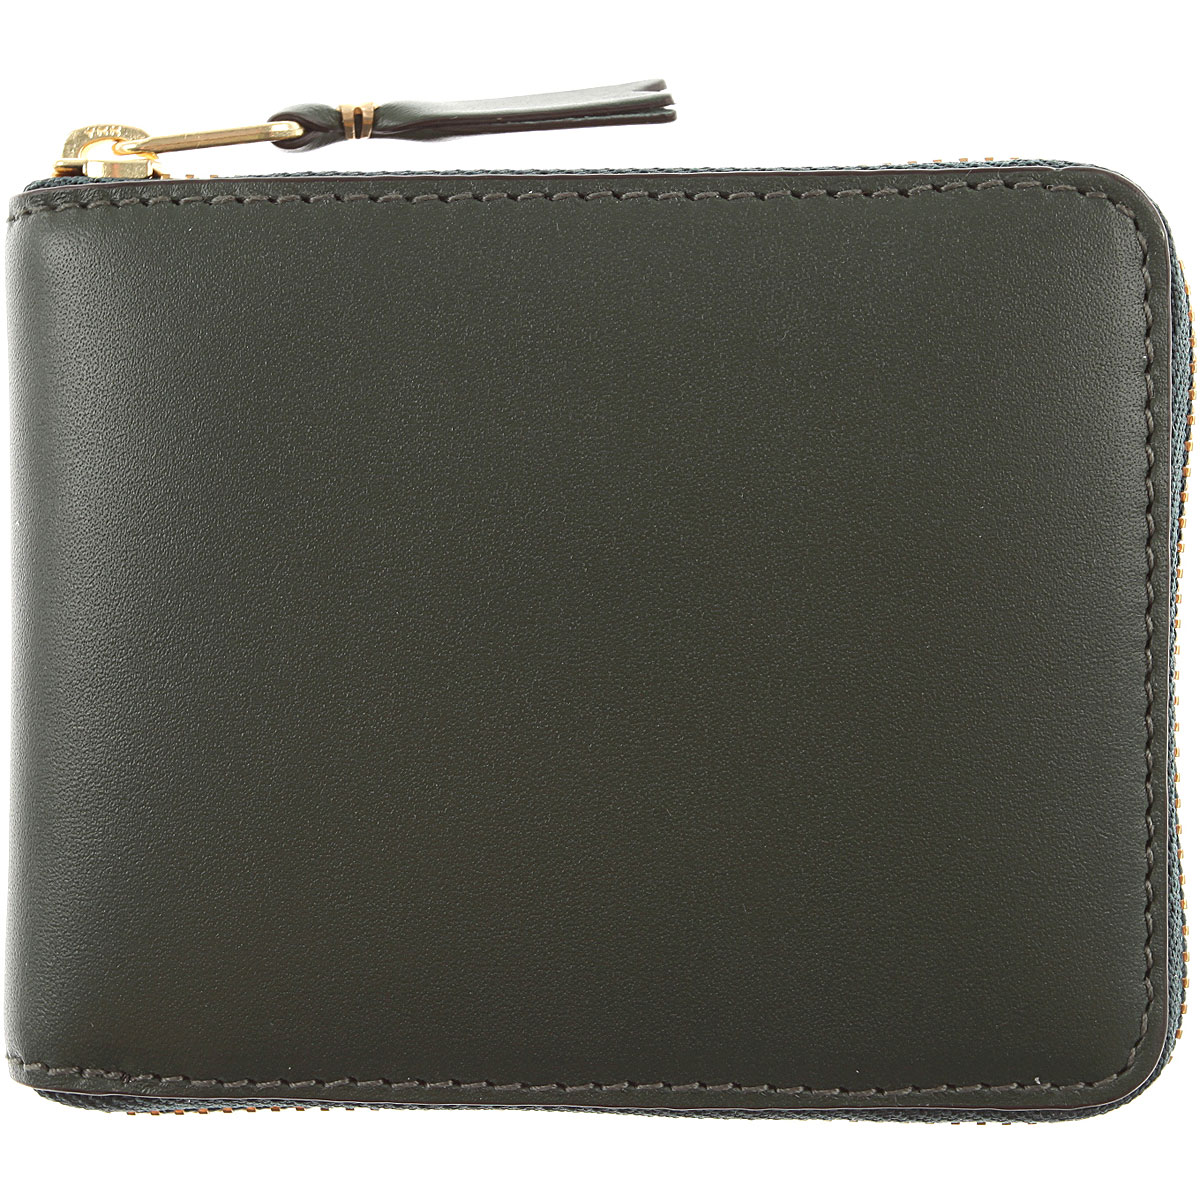 Comme des Garcons Wallet for Women Leather USA - GOOFASH